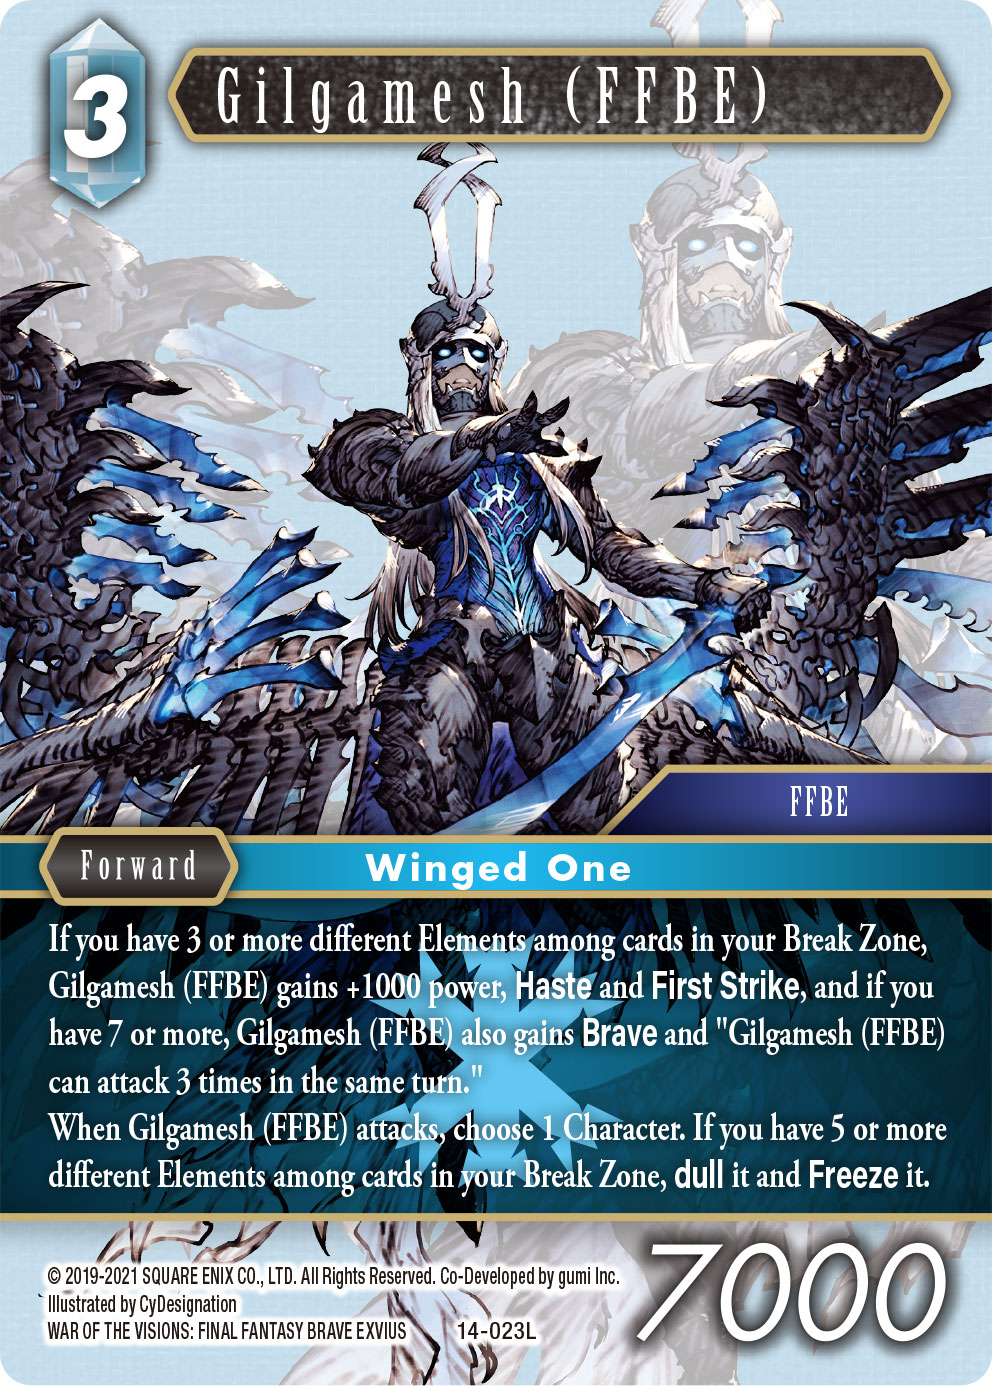 Opus XIV Card of Gilgamesh from War of the Visions